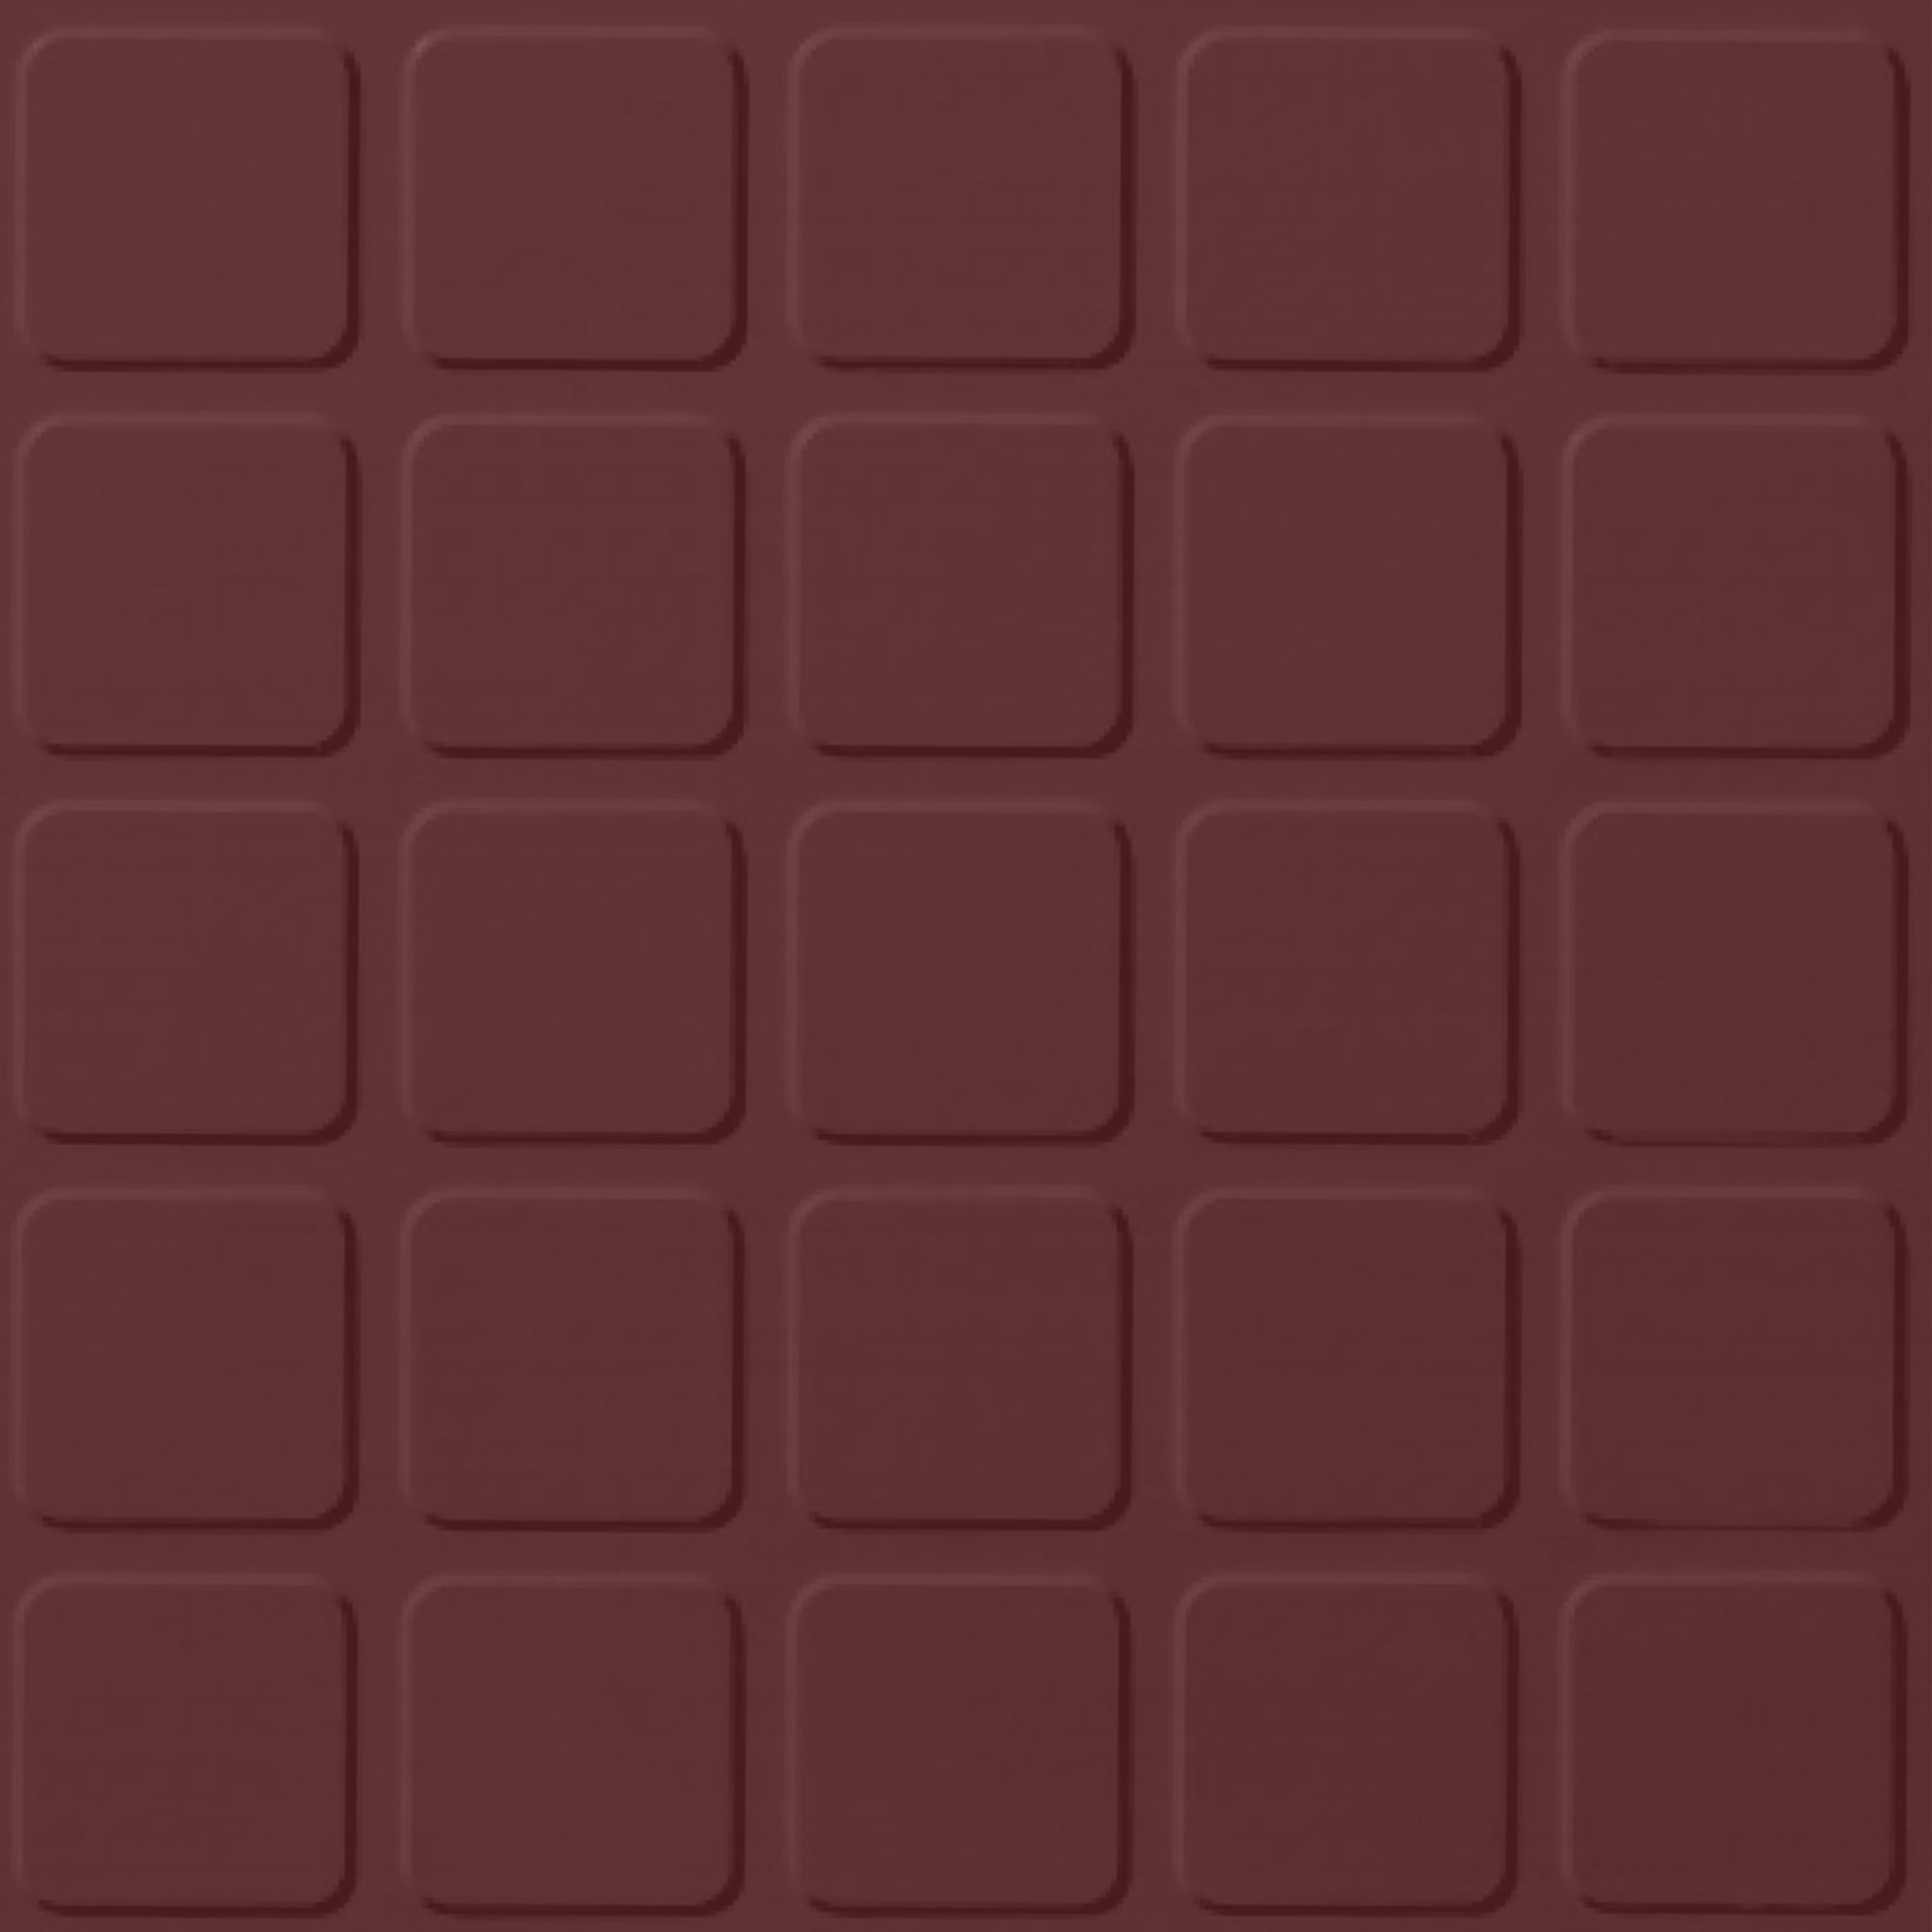 Roppe Rubber Design Treads - Raised Square Design Cinnabar 137